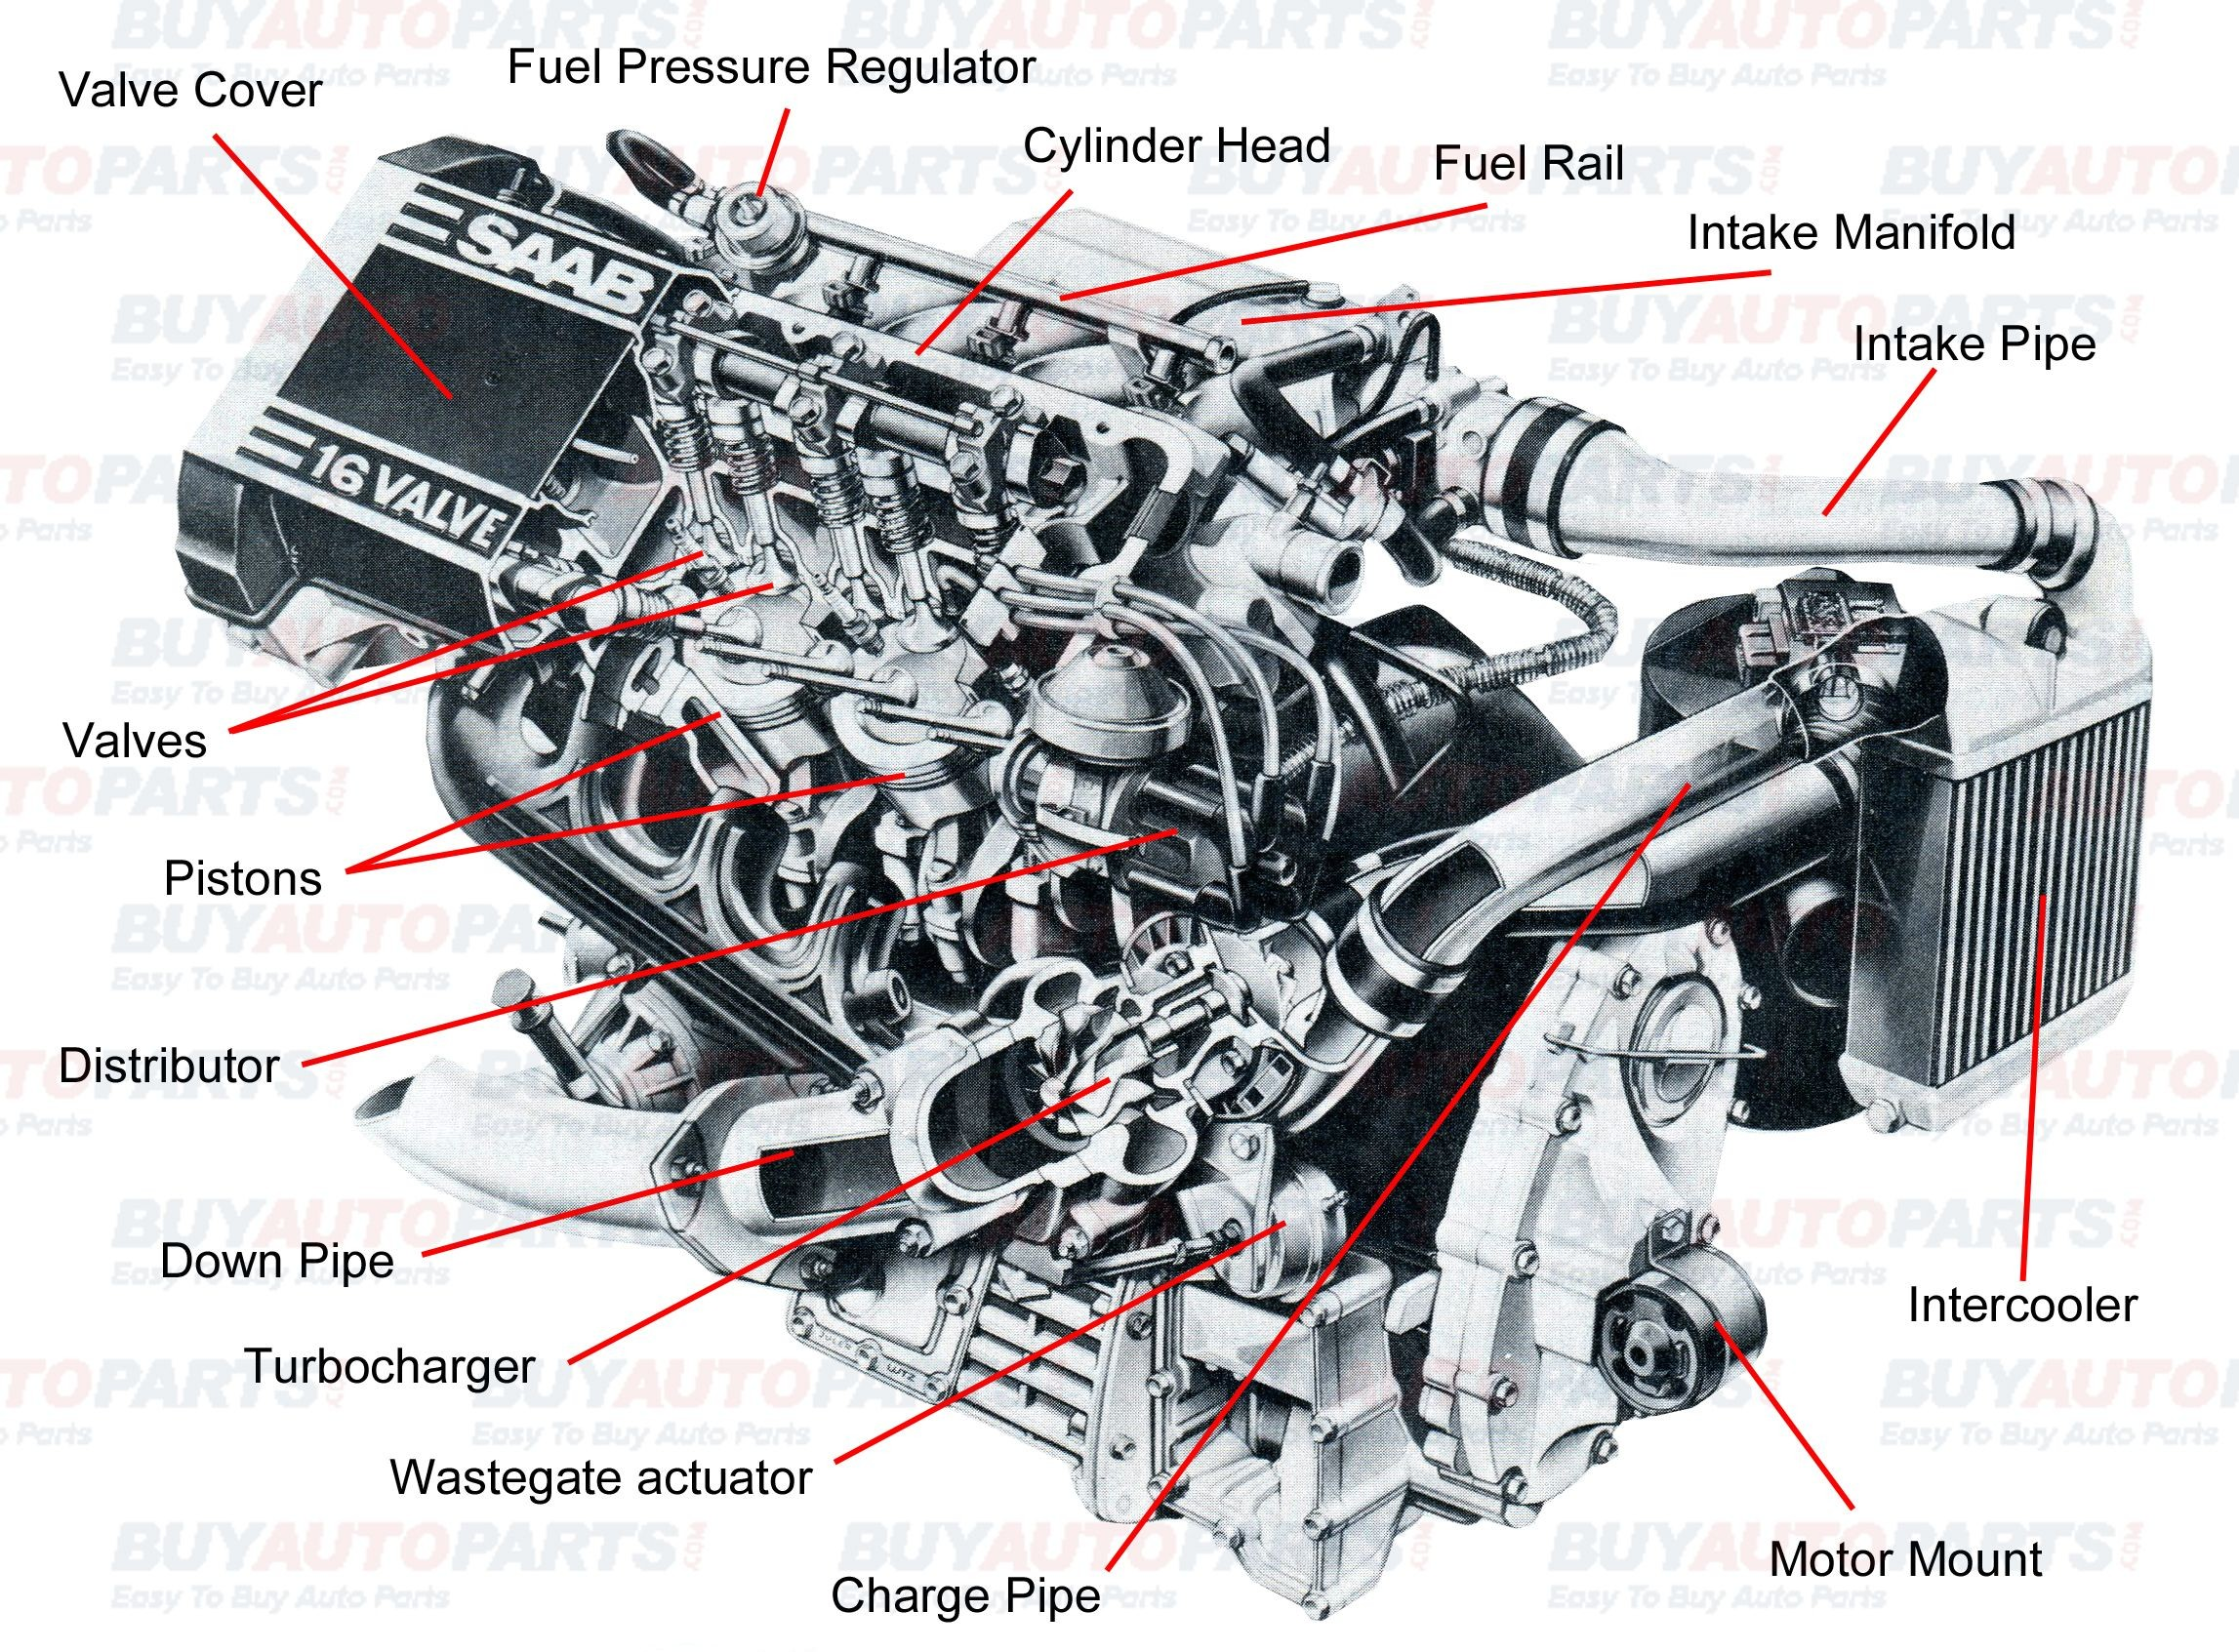 Diesel Engine Parts Diagram All Internal Bustion Engines Have the Same Basic Ponents the Of Diesel Engine Parts Diagram